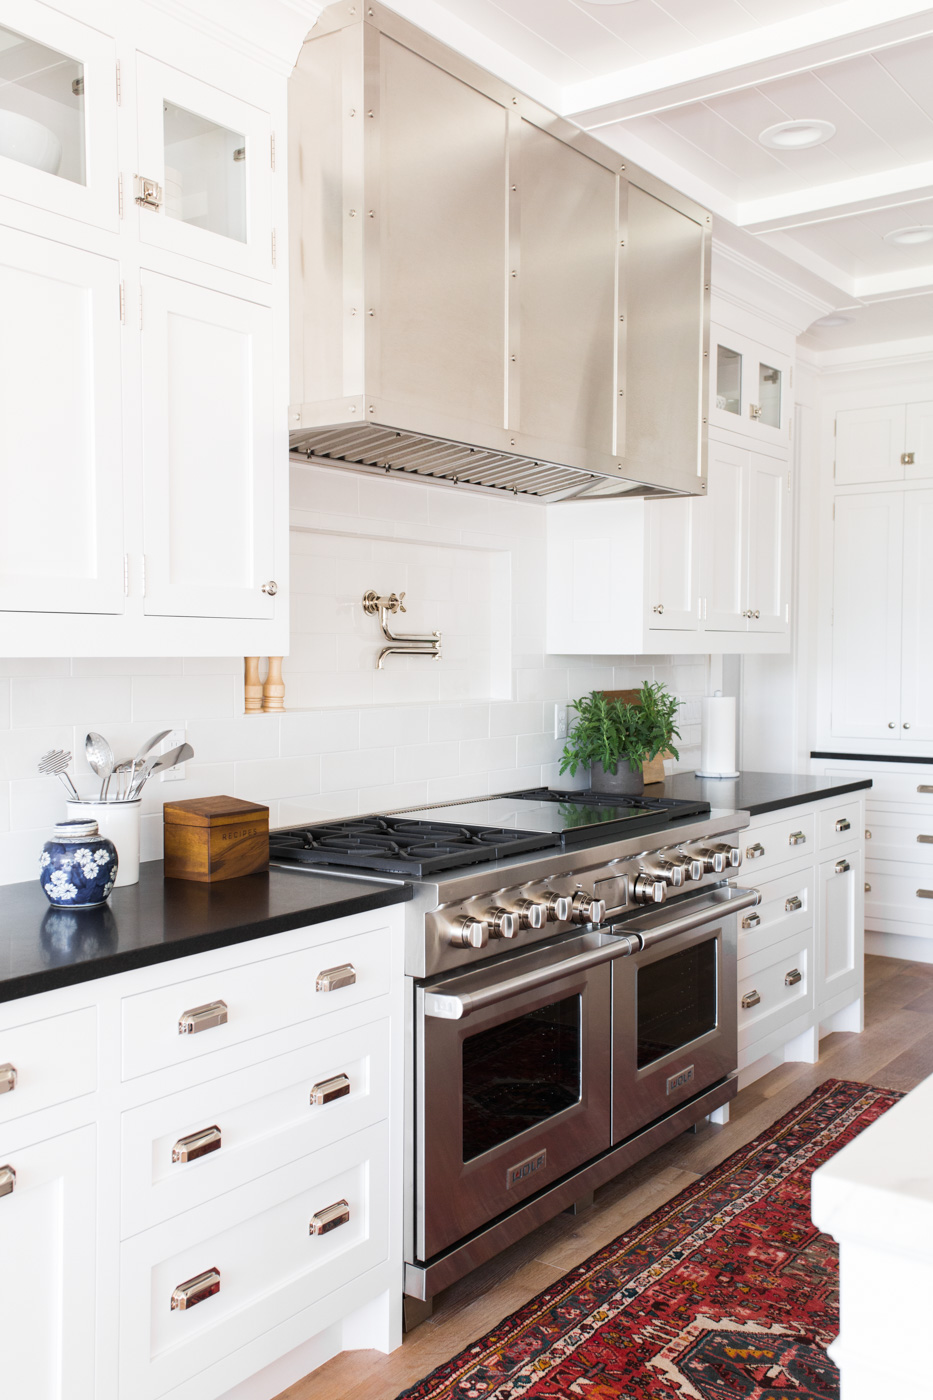 Double oven with stove tops in modern kitchen